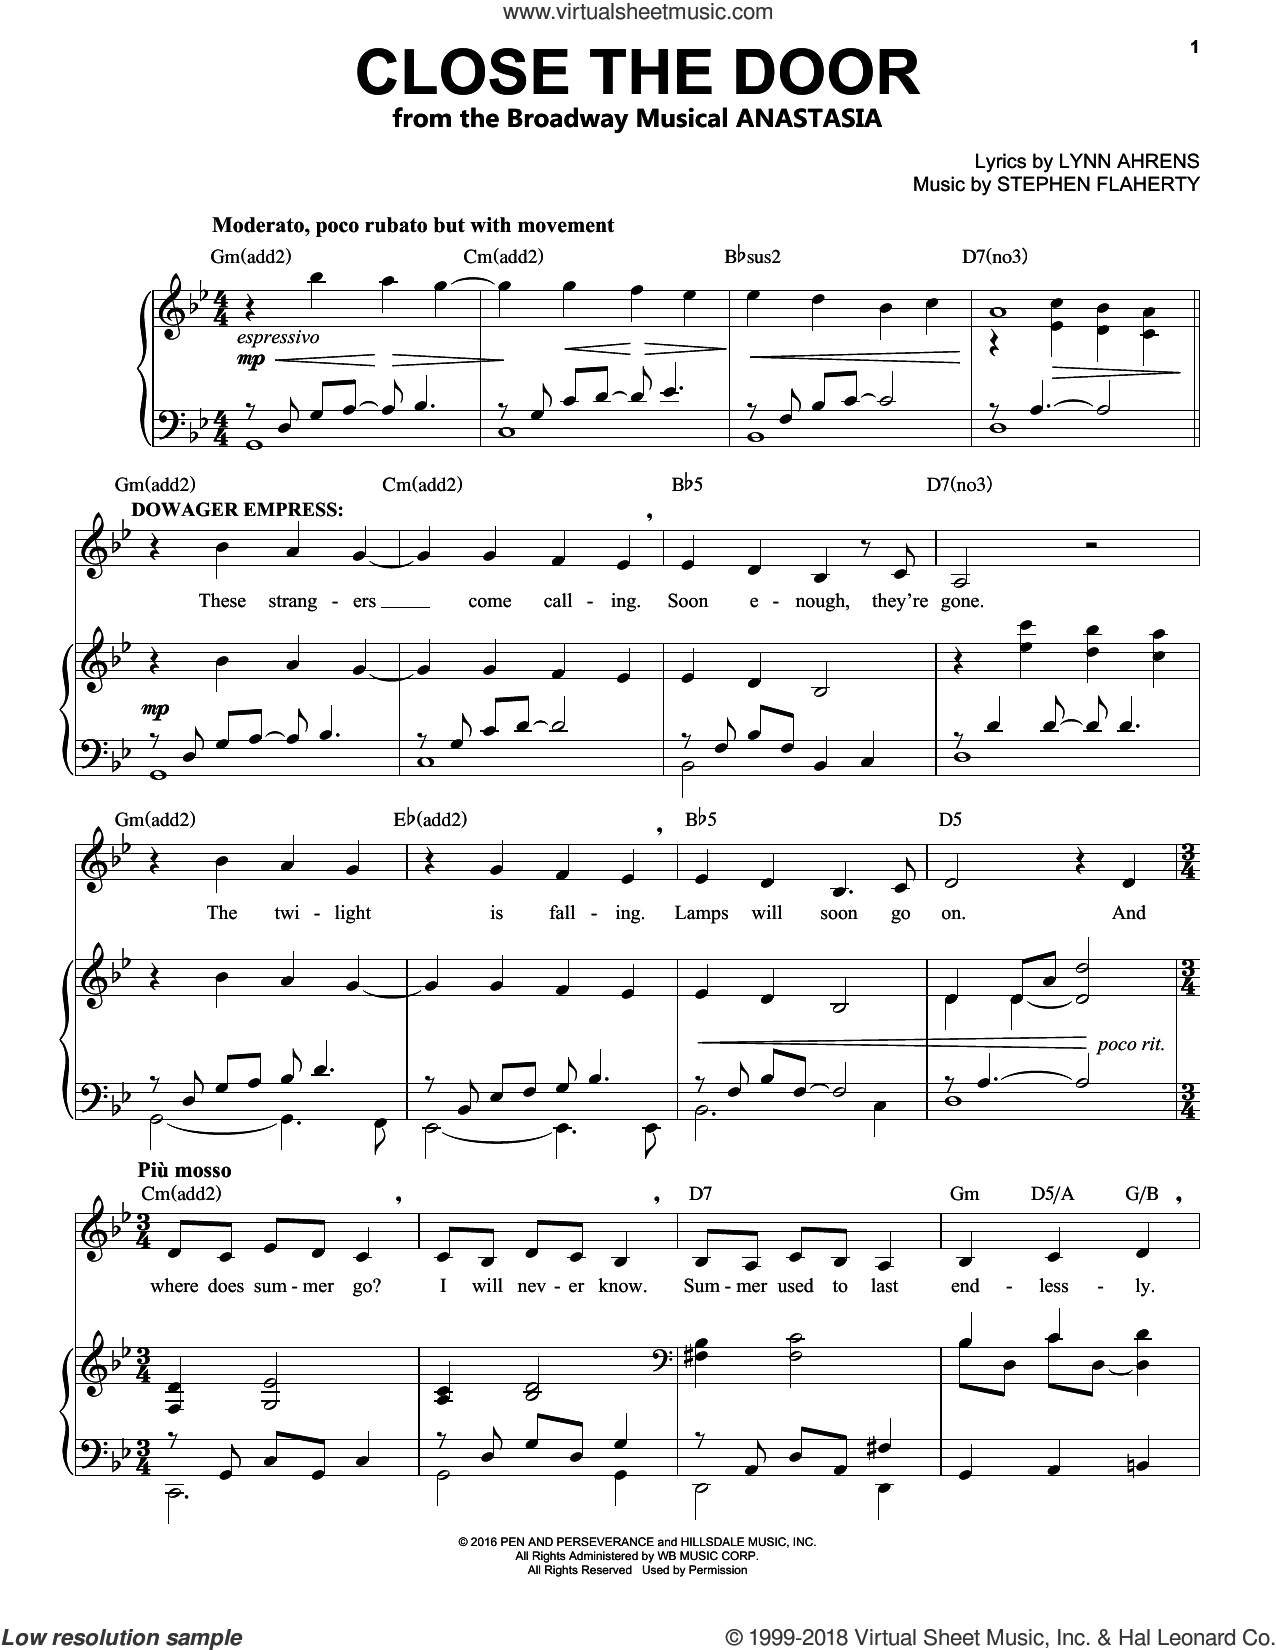 Close The Door sheet music for voice and piano by Stephen Flaherty and Lynn Ahrens, intermediate skill level